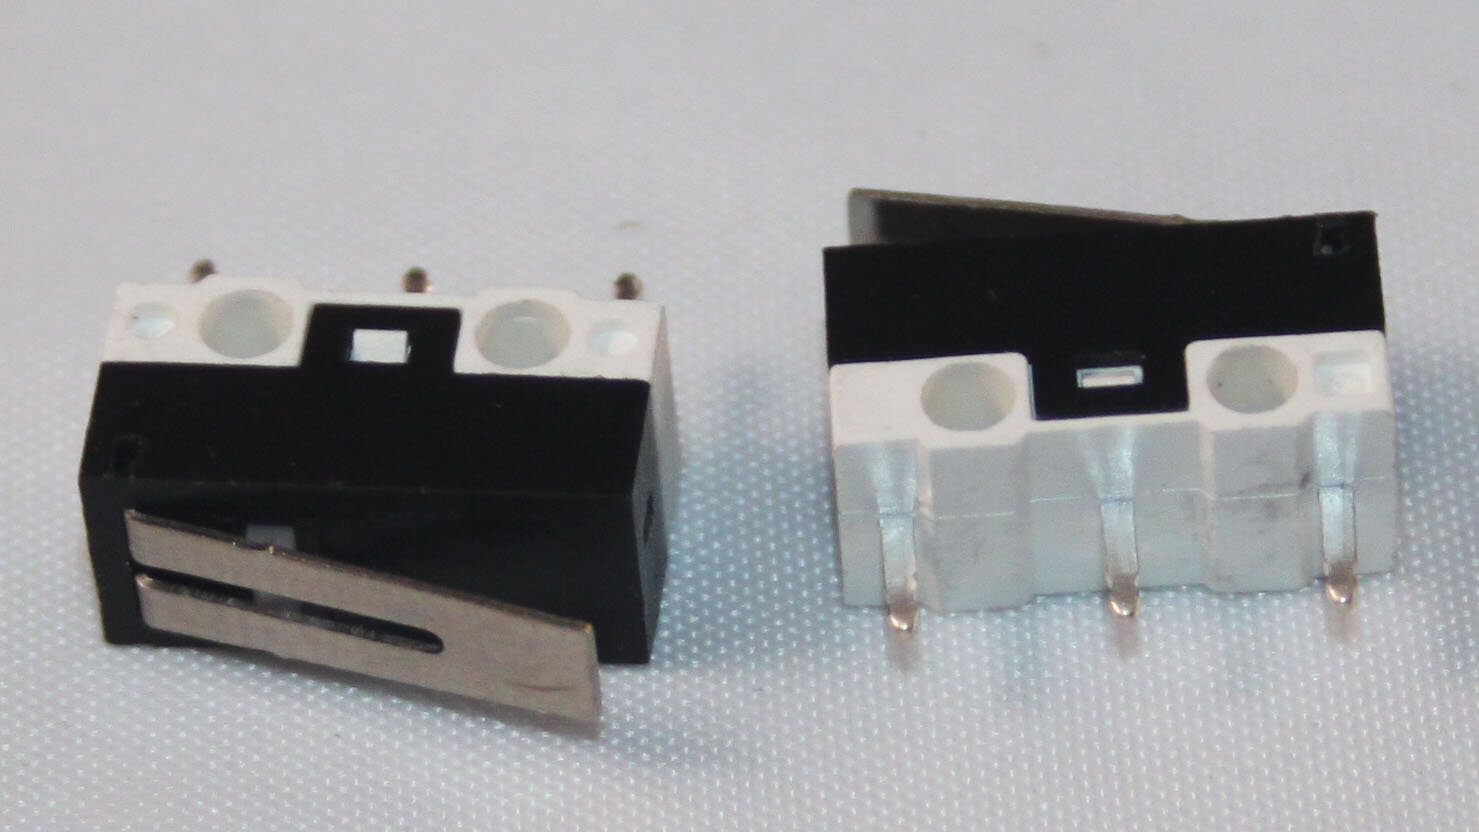 MICRO SWITCH – SMALL LEVER 40G - Code: MICSSL11.5mm Lever SPDT Momentary Micro switch. Operating force: 40gfRating: 0.5A 125V ACBody dimensions: 12.9 x 6.5 x 5.8mmPrice (each): $1.22